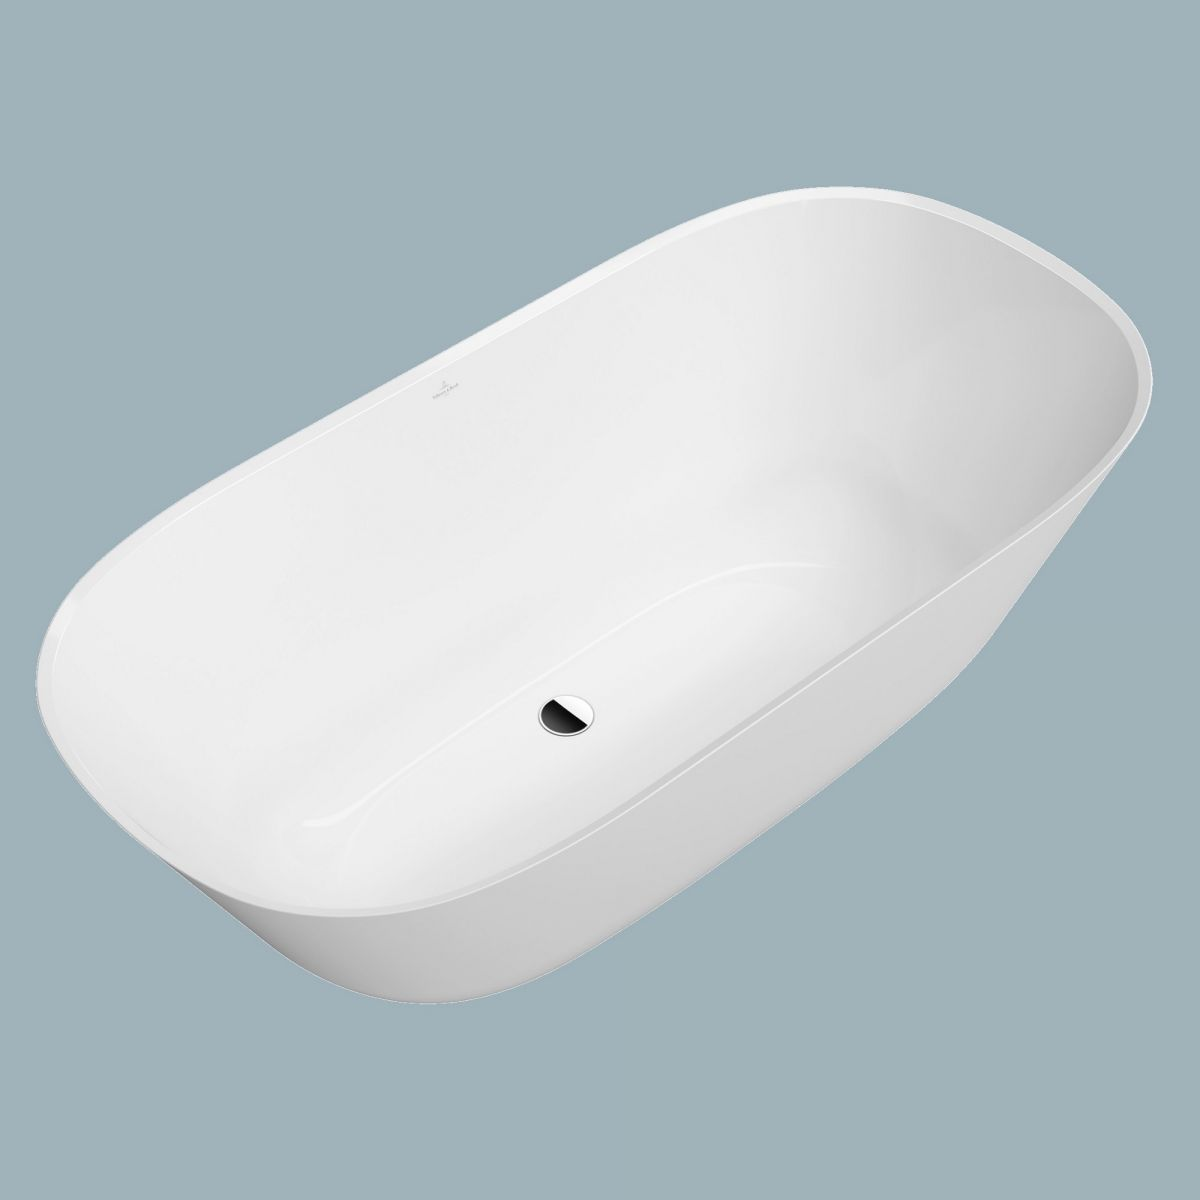 Villeroy & Boch Theano Solo Freestanding Bath : UK Bathrooms